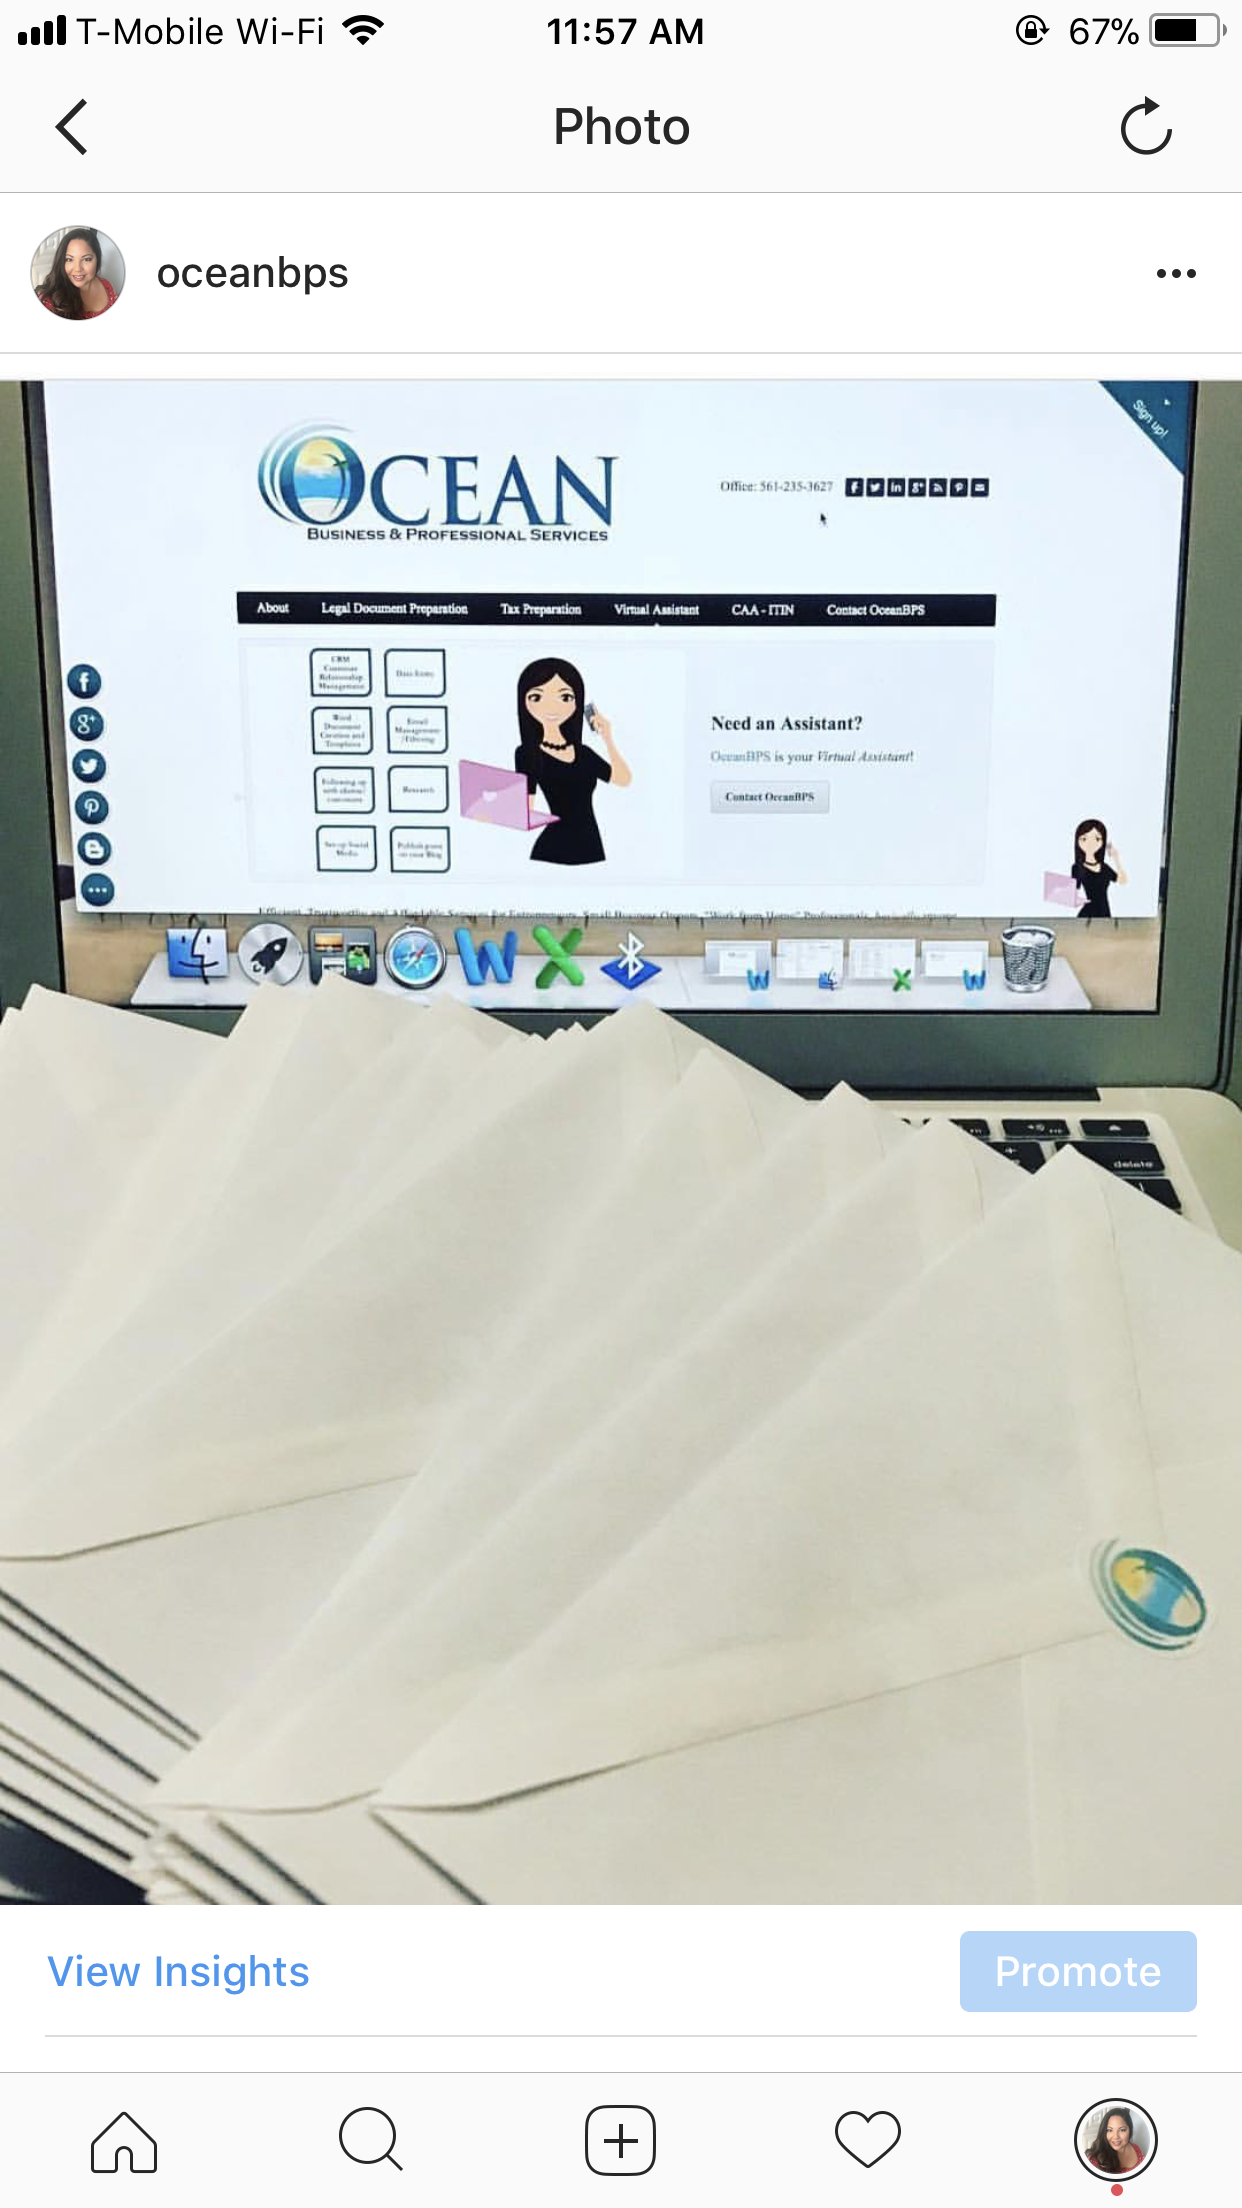 Marketing Day Here At OceanBPS Located In Boynton Beach - Legal document preparation business